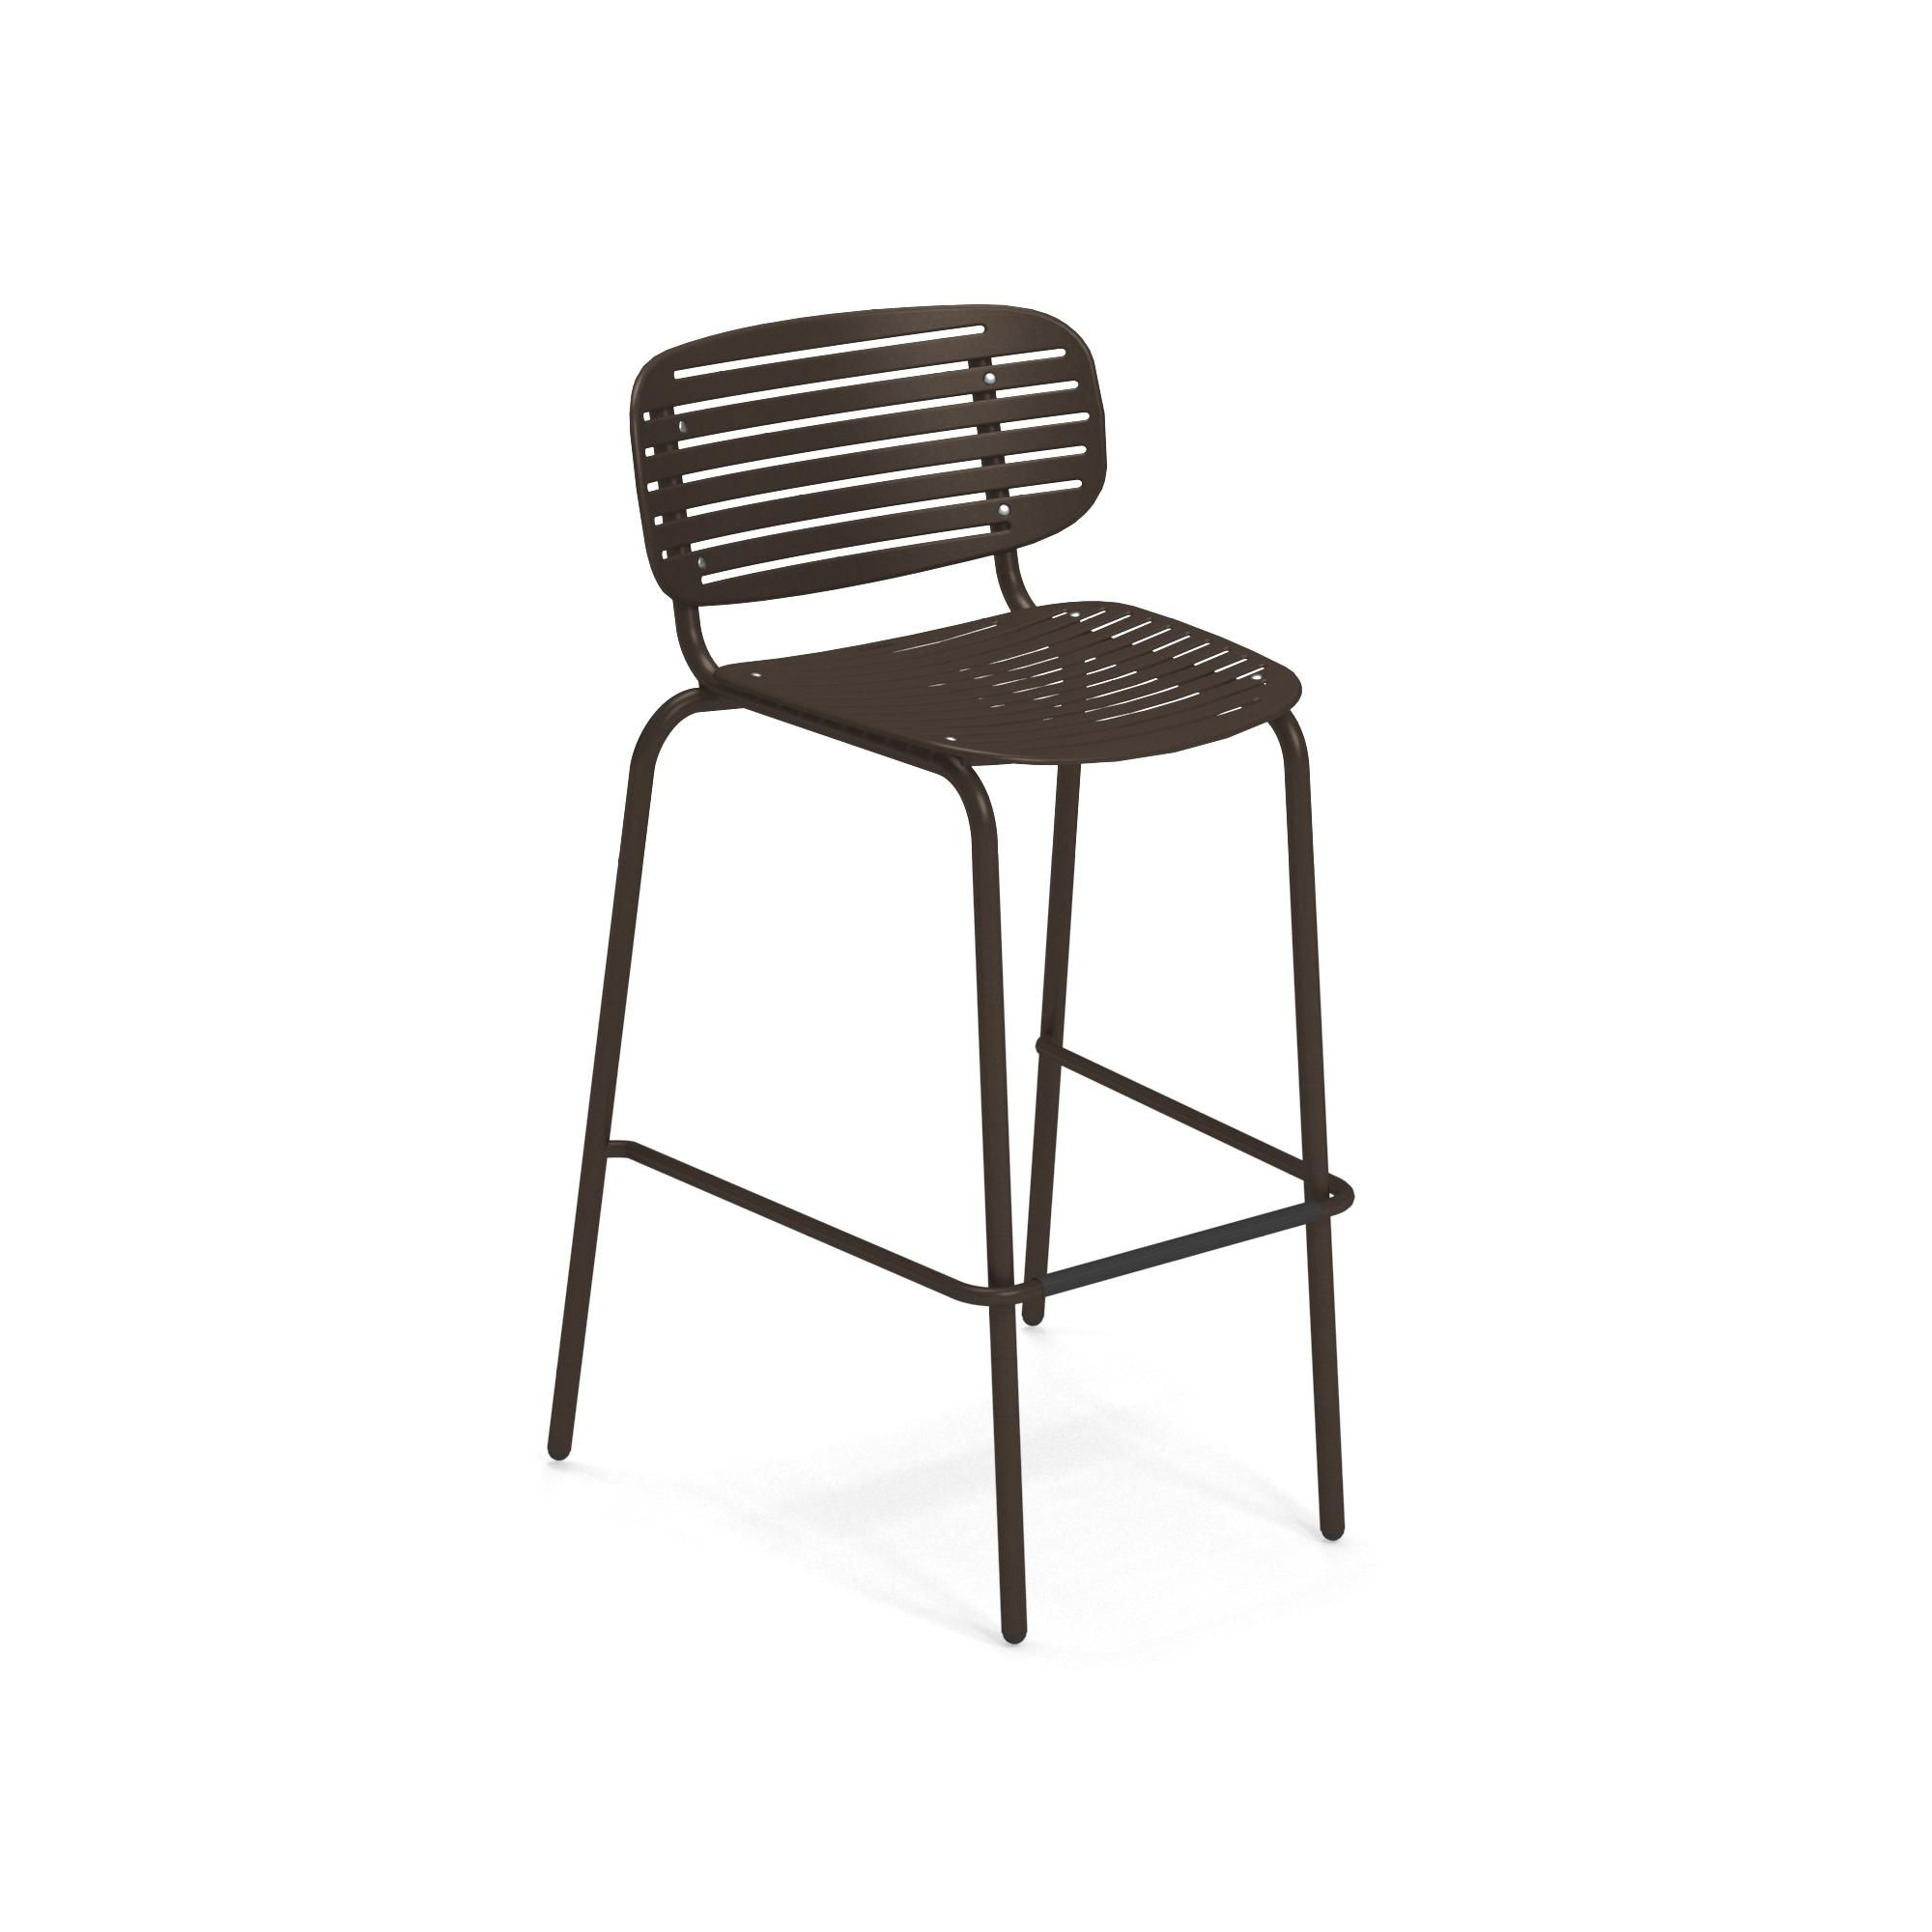 emuamericas, llc 649-41 bar stool, stacking, outdoor